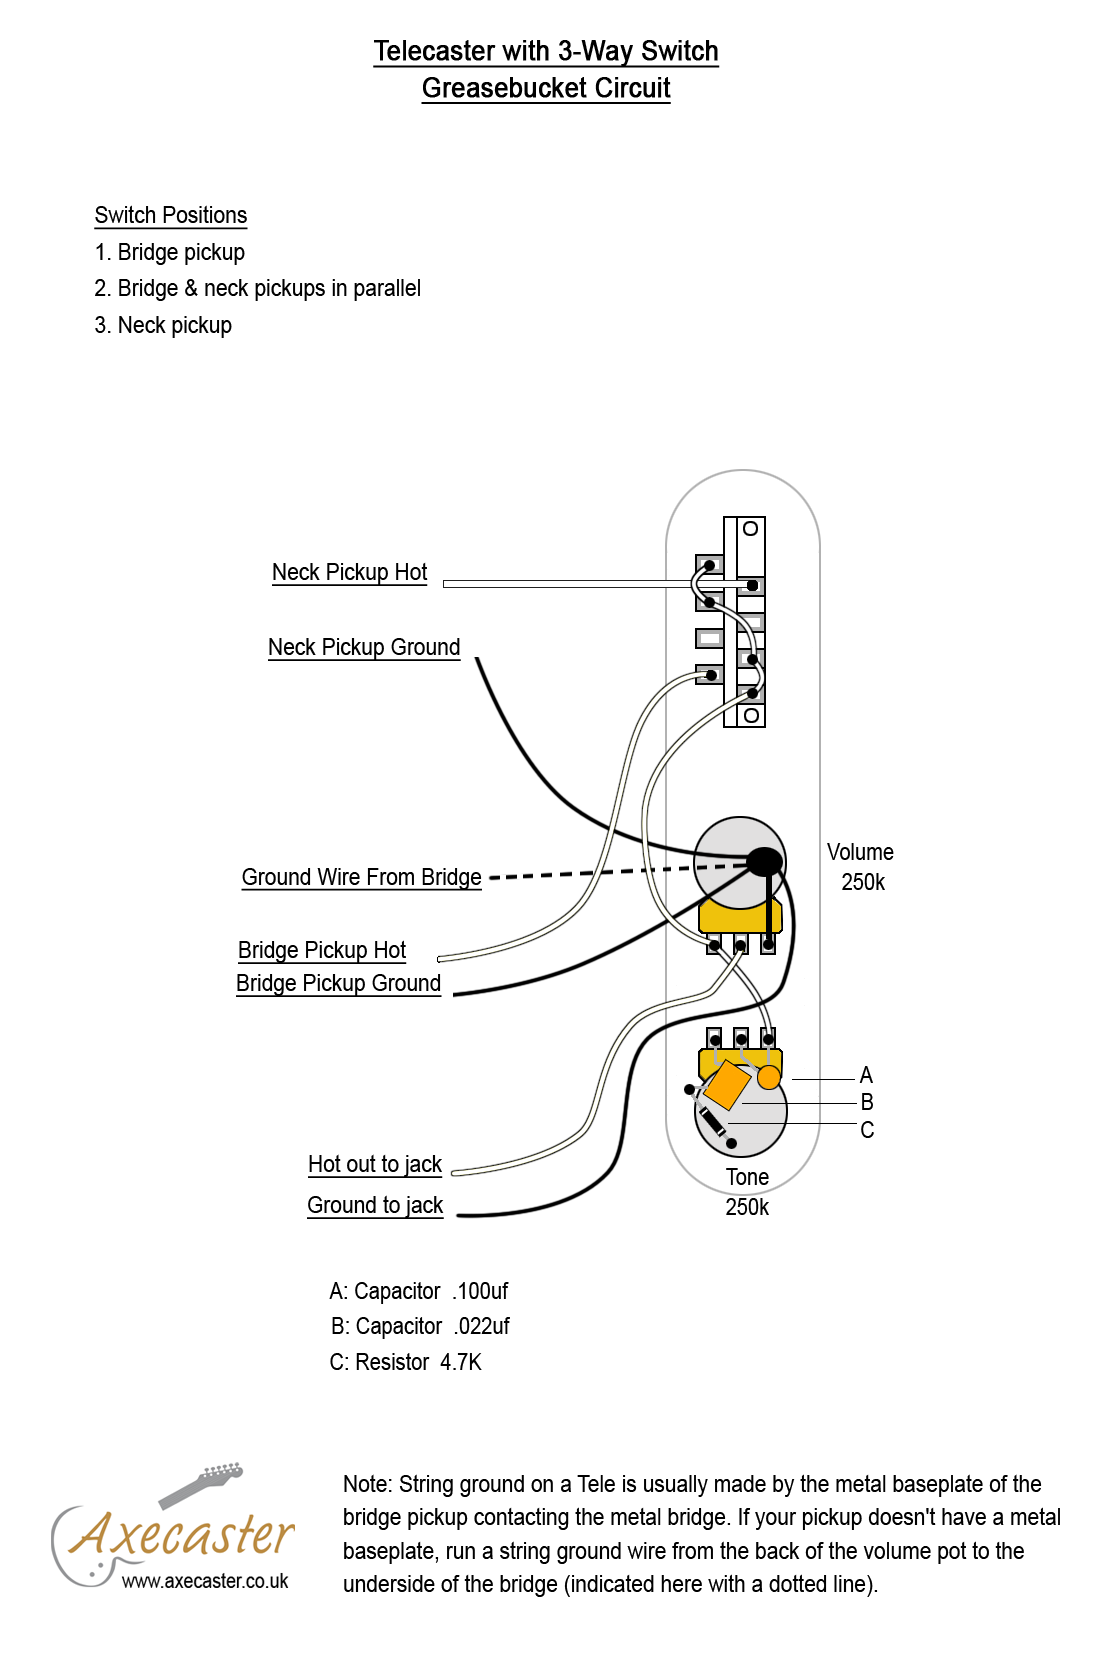 Wiring Diagrams Axecaster Build It How You Want Les Paul Diagram 50s Vs Modern As Well Gibson Be Hard To See Everything On The Fender Heres A Great Video Of Mike Eldred From Custom Shop Talking About Greasebucket Circuit